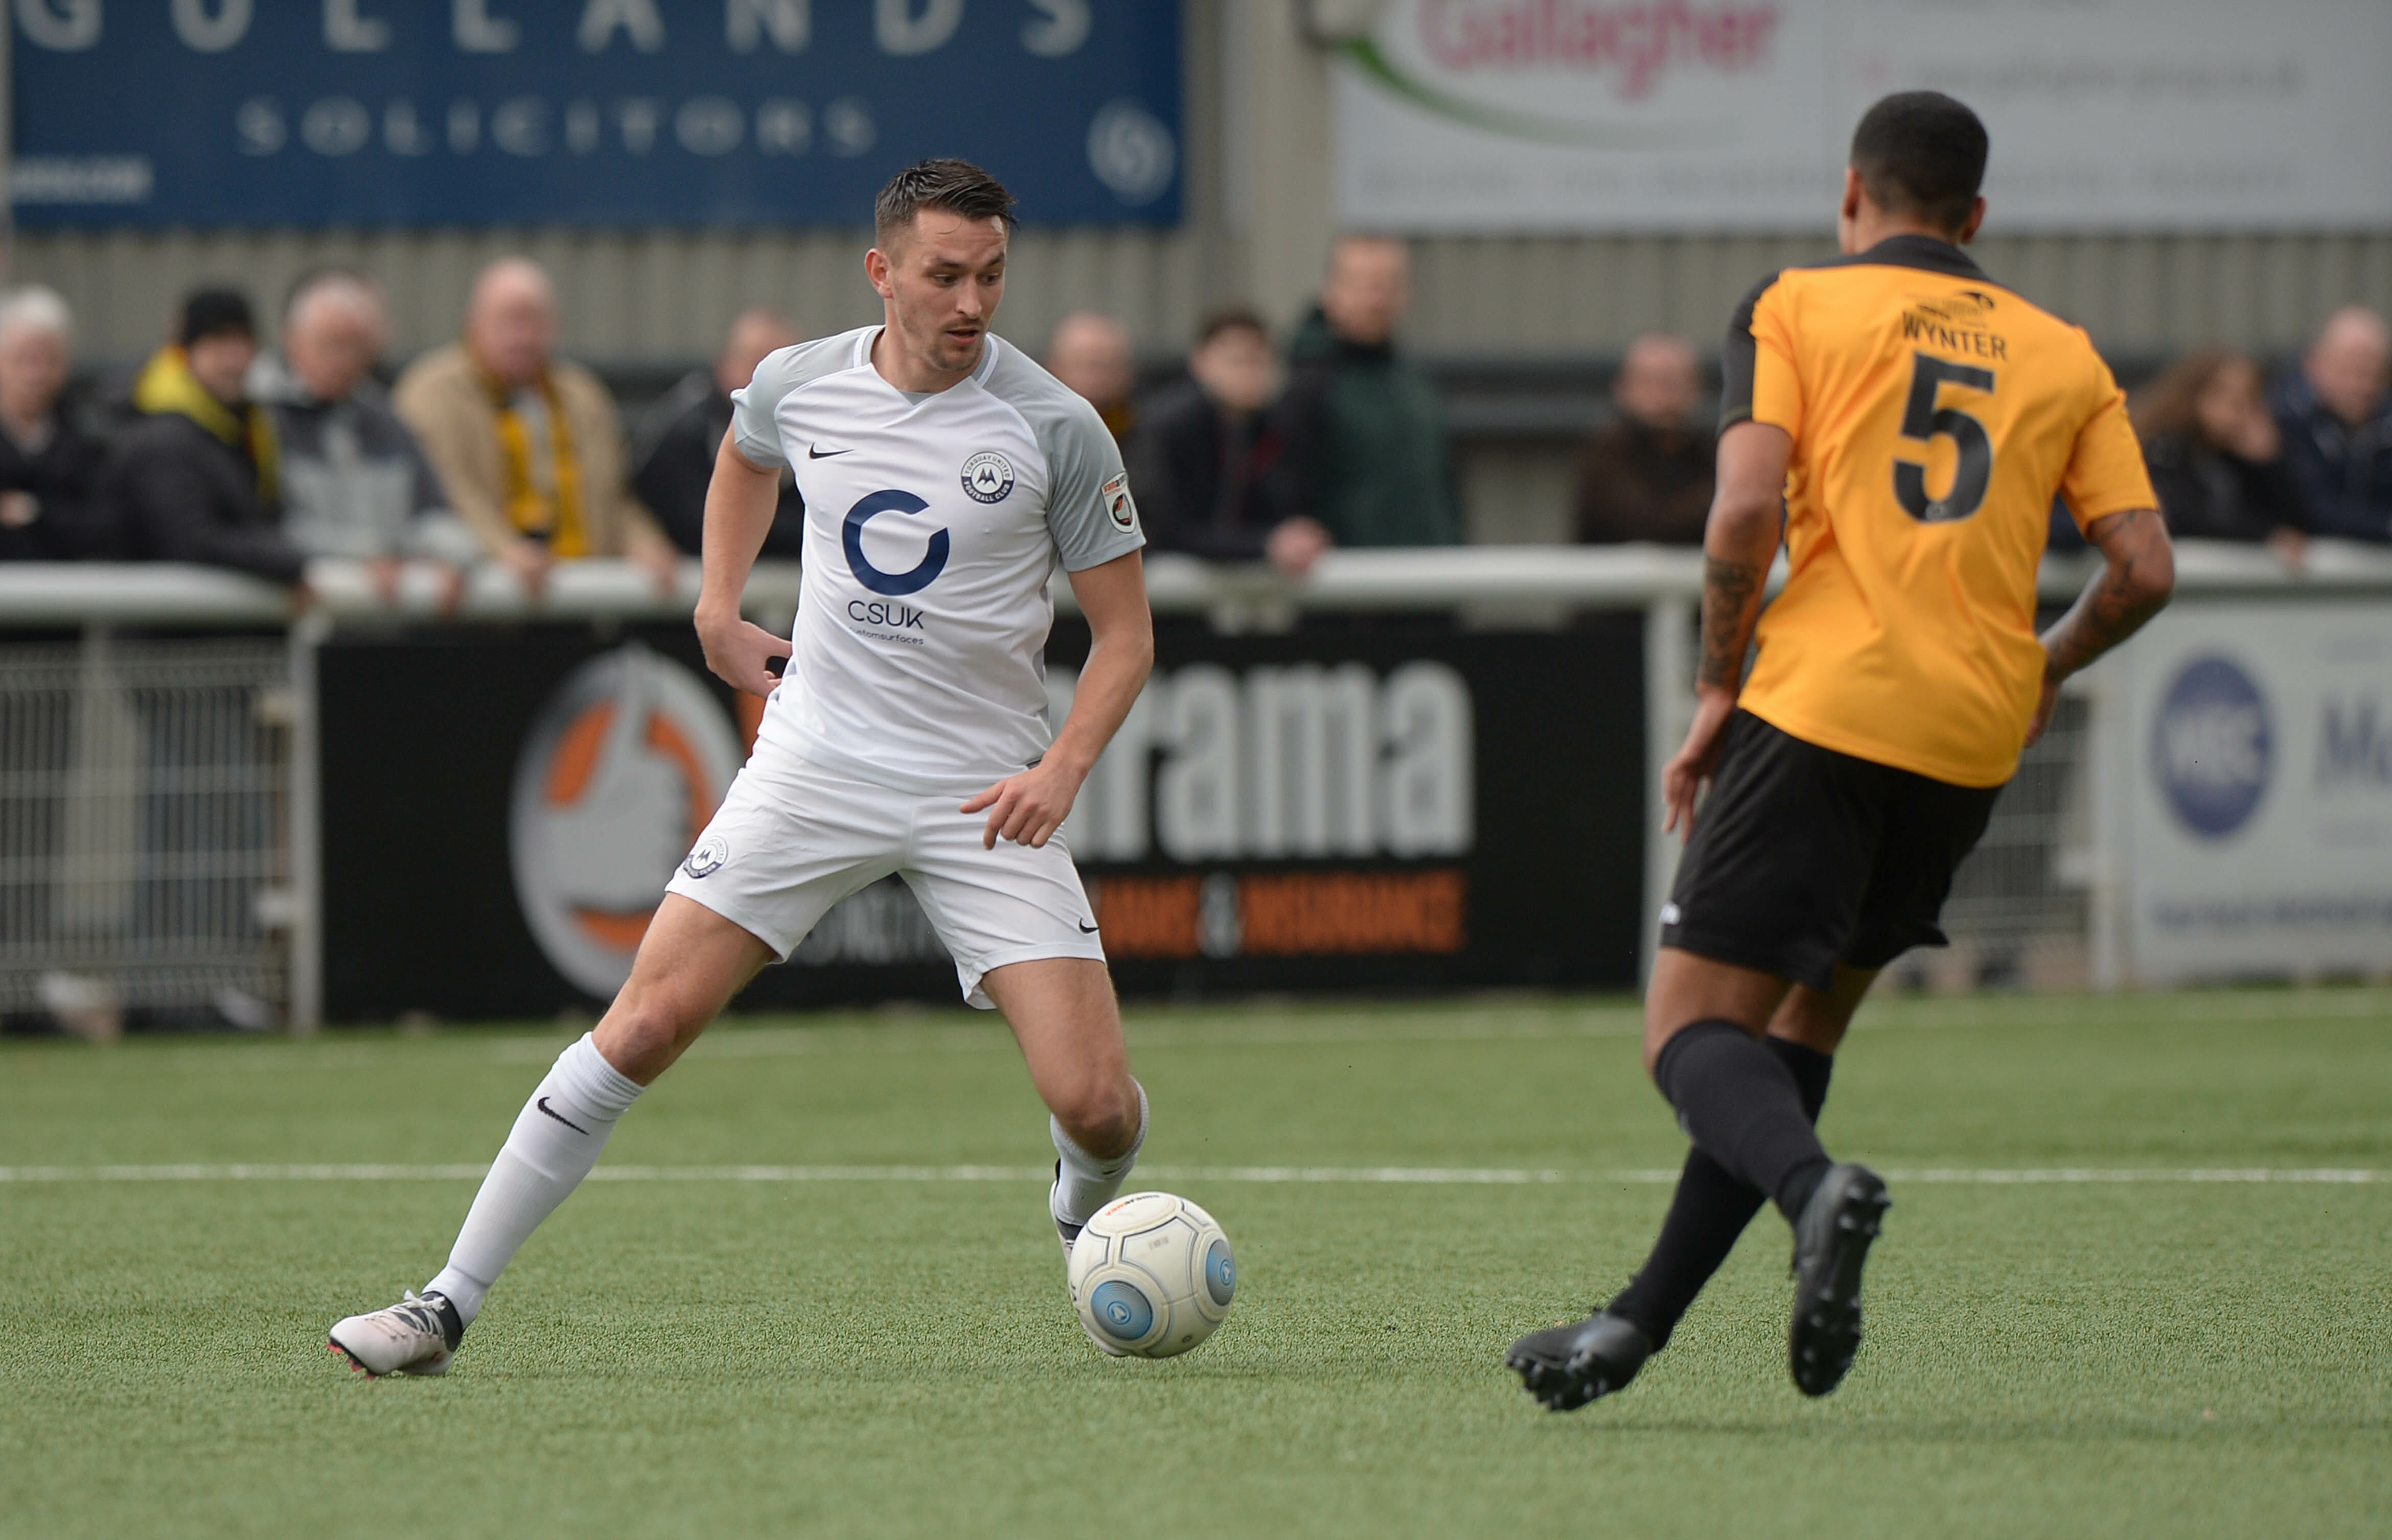 Maidstone United v Torquay United, Maidstone, UK - 10